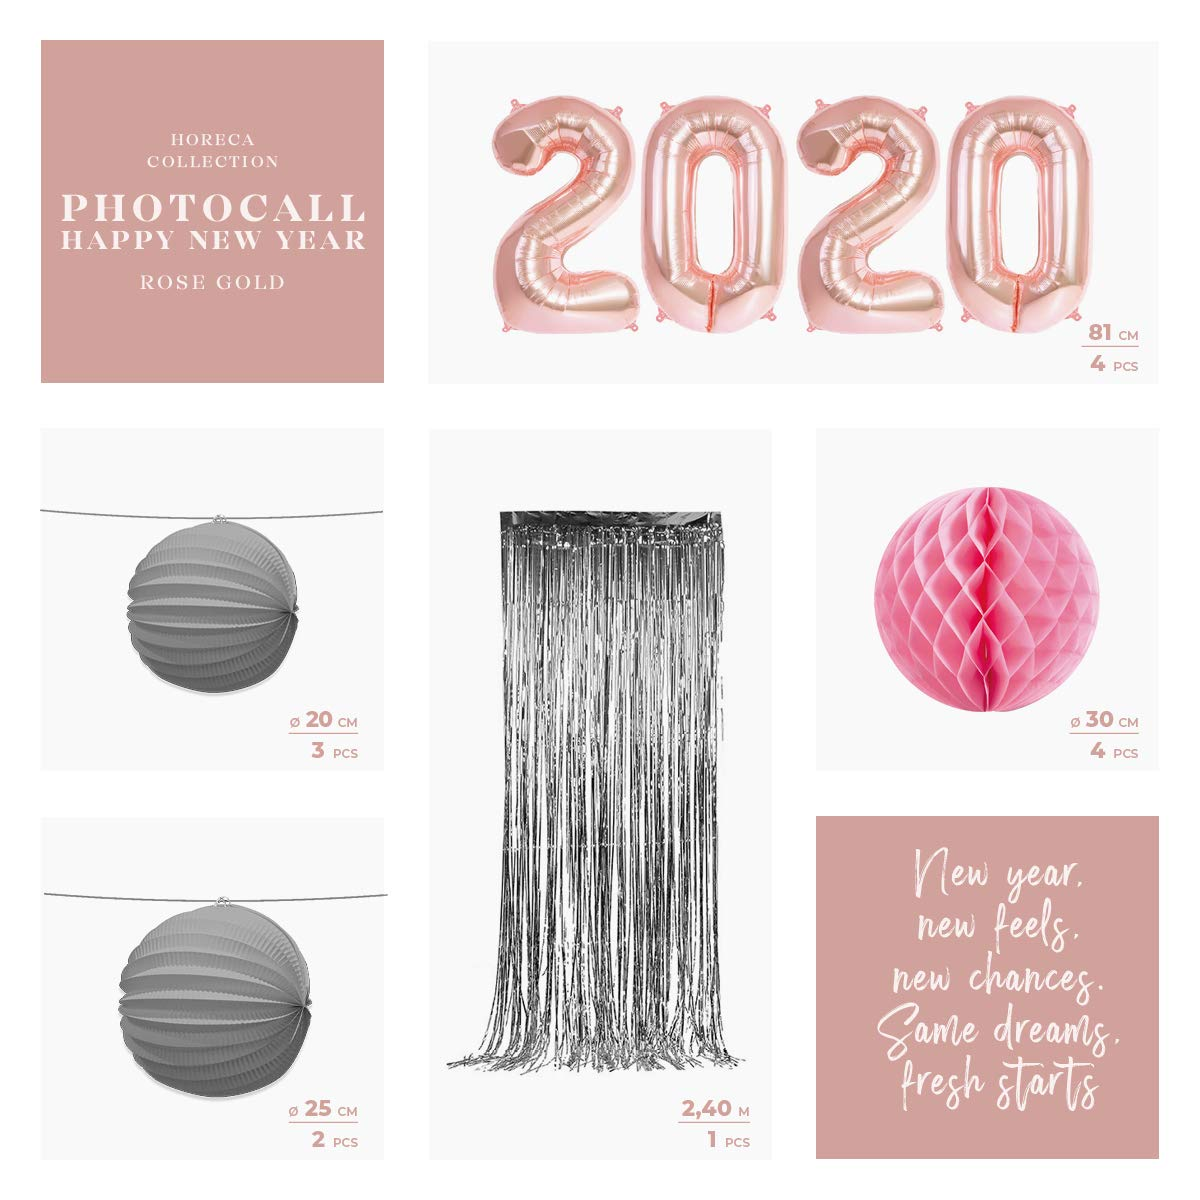 Incluye Globos Metalizados Gold Rose 2020 Horeca Collection Pack Ahorro Photocall Nochevieja 2020 Gold Rose Luxury Honeycomb Rosa y L/ámparas Papel Cortina Metalizada Foil